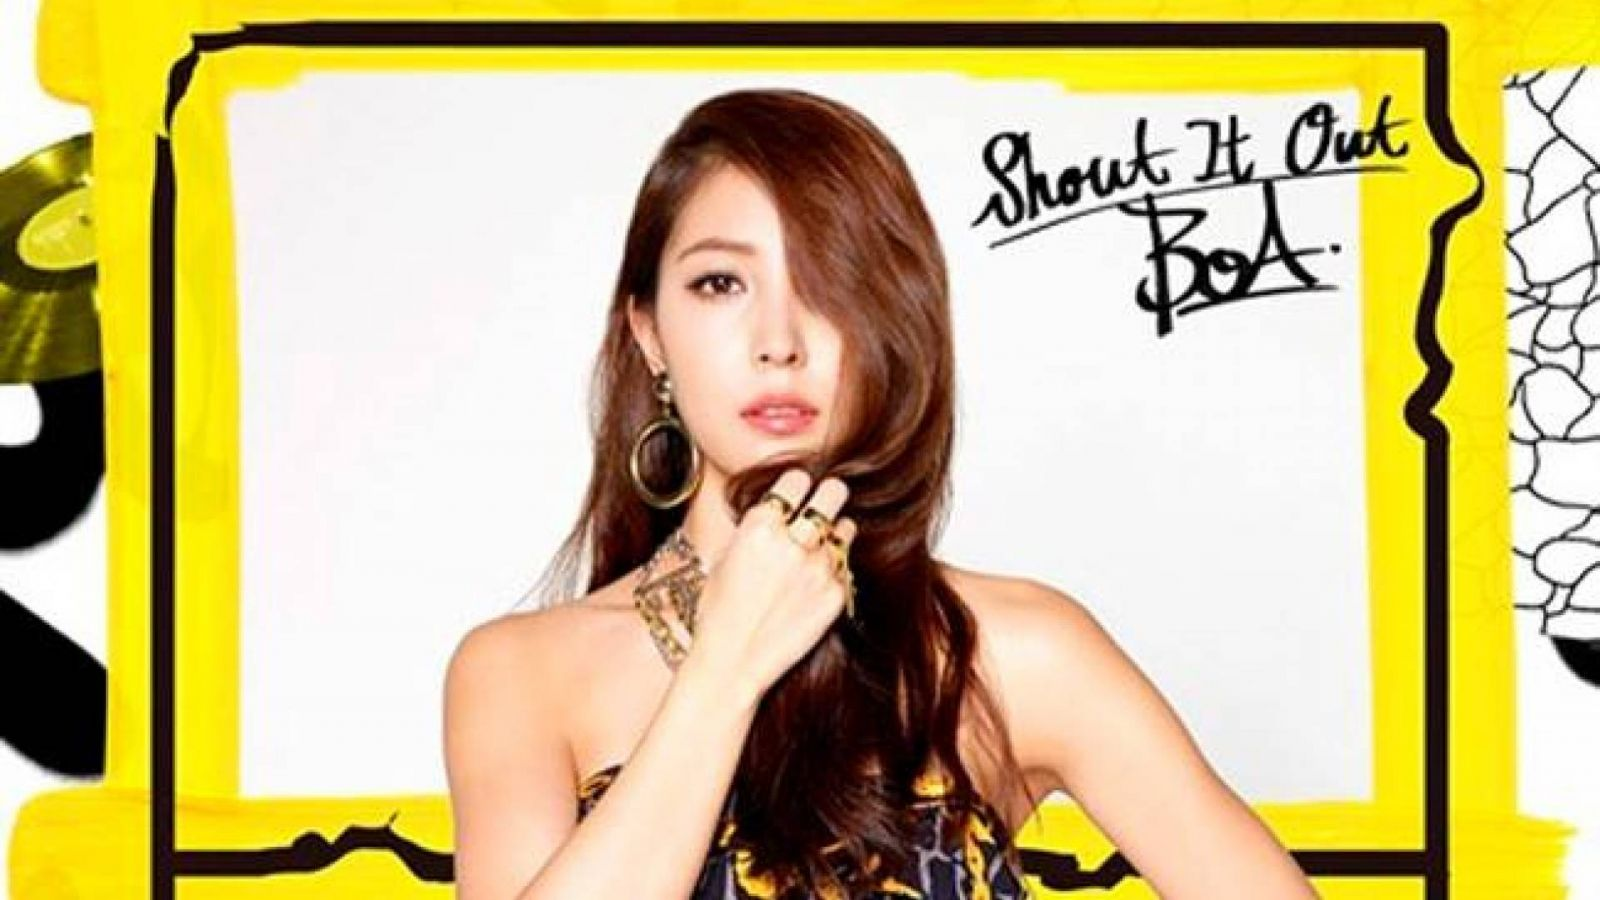 BoA lança Shout It Out © SM Entertainment